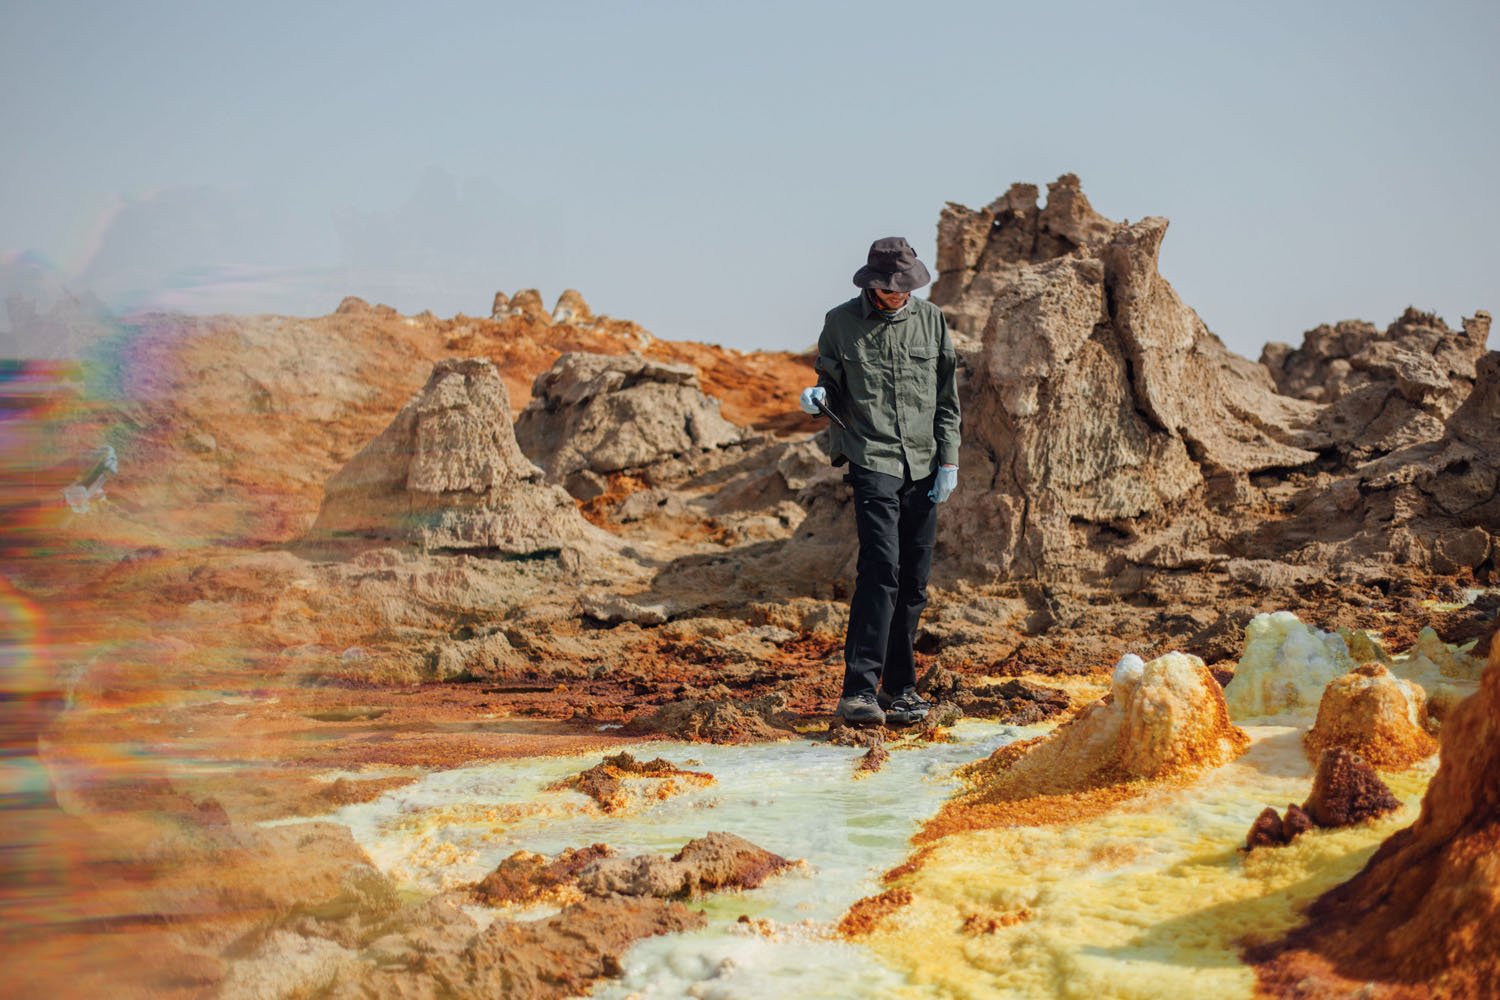 Vincent Rennie prepares to take a pH measurement from a sulfur pool. Photograph by Alex Pritz.